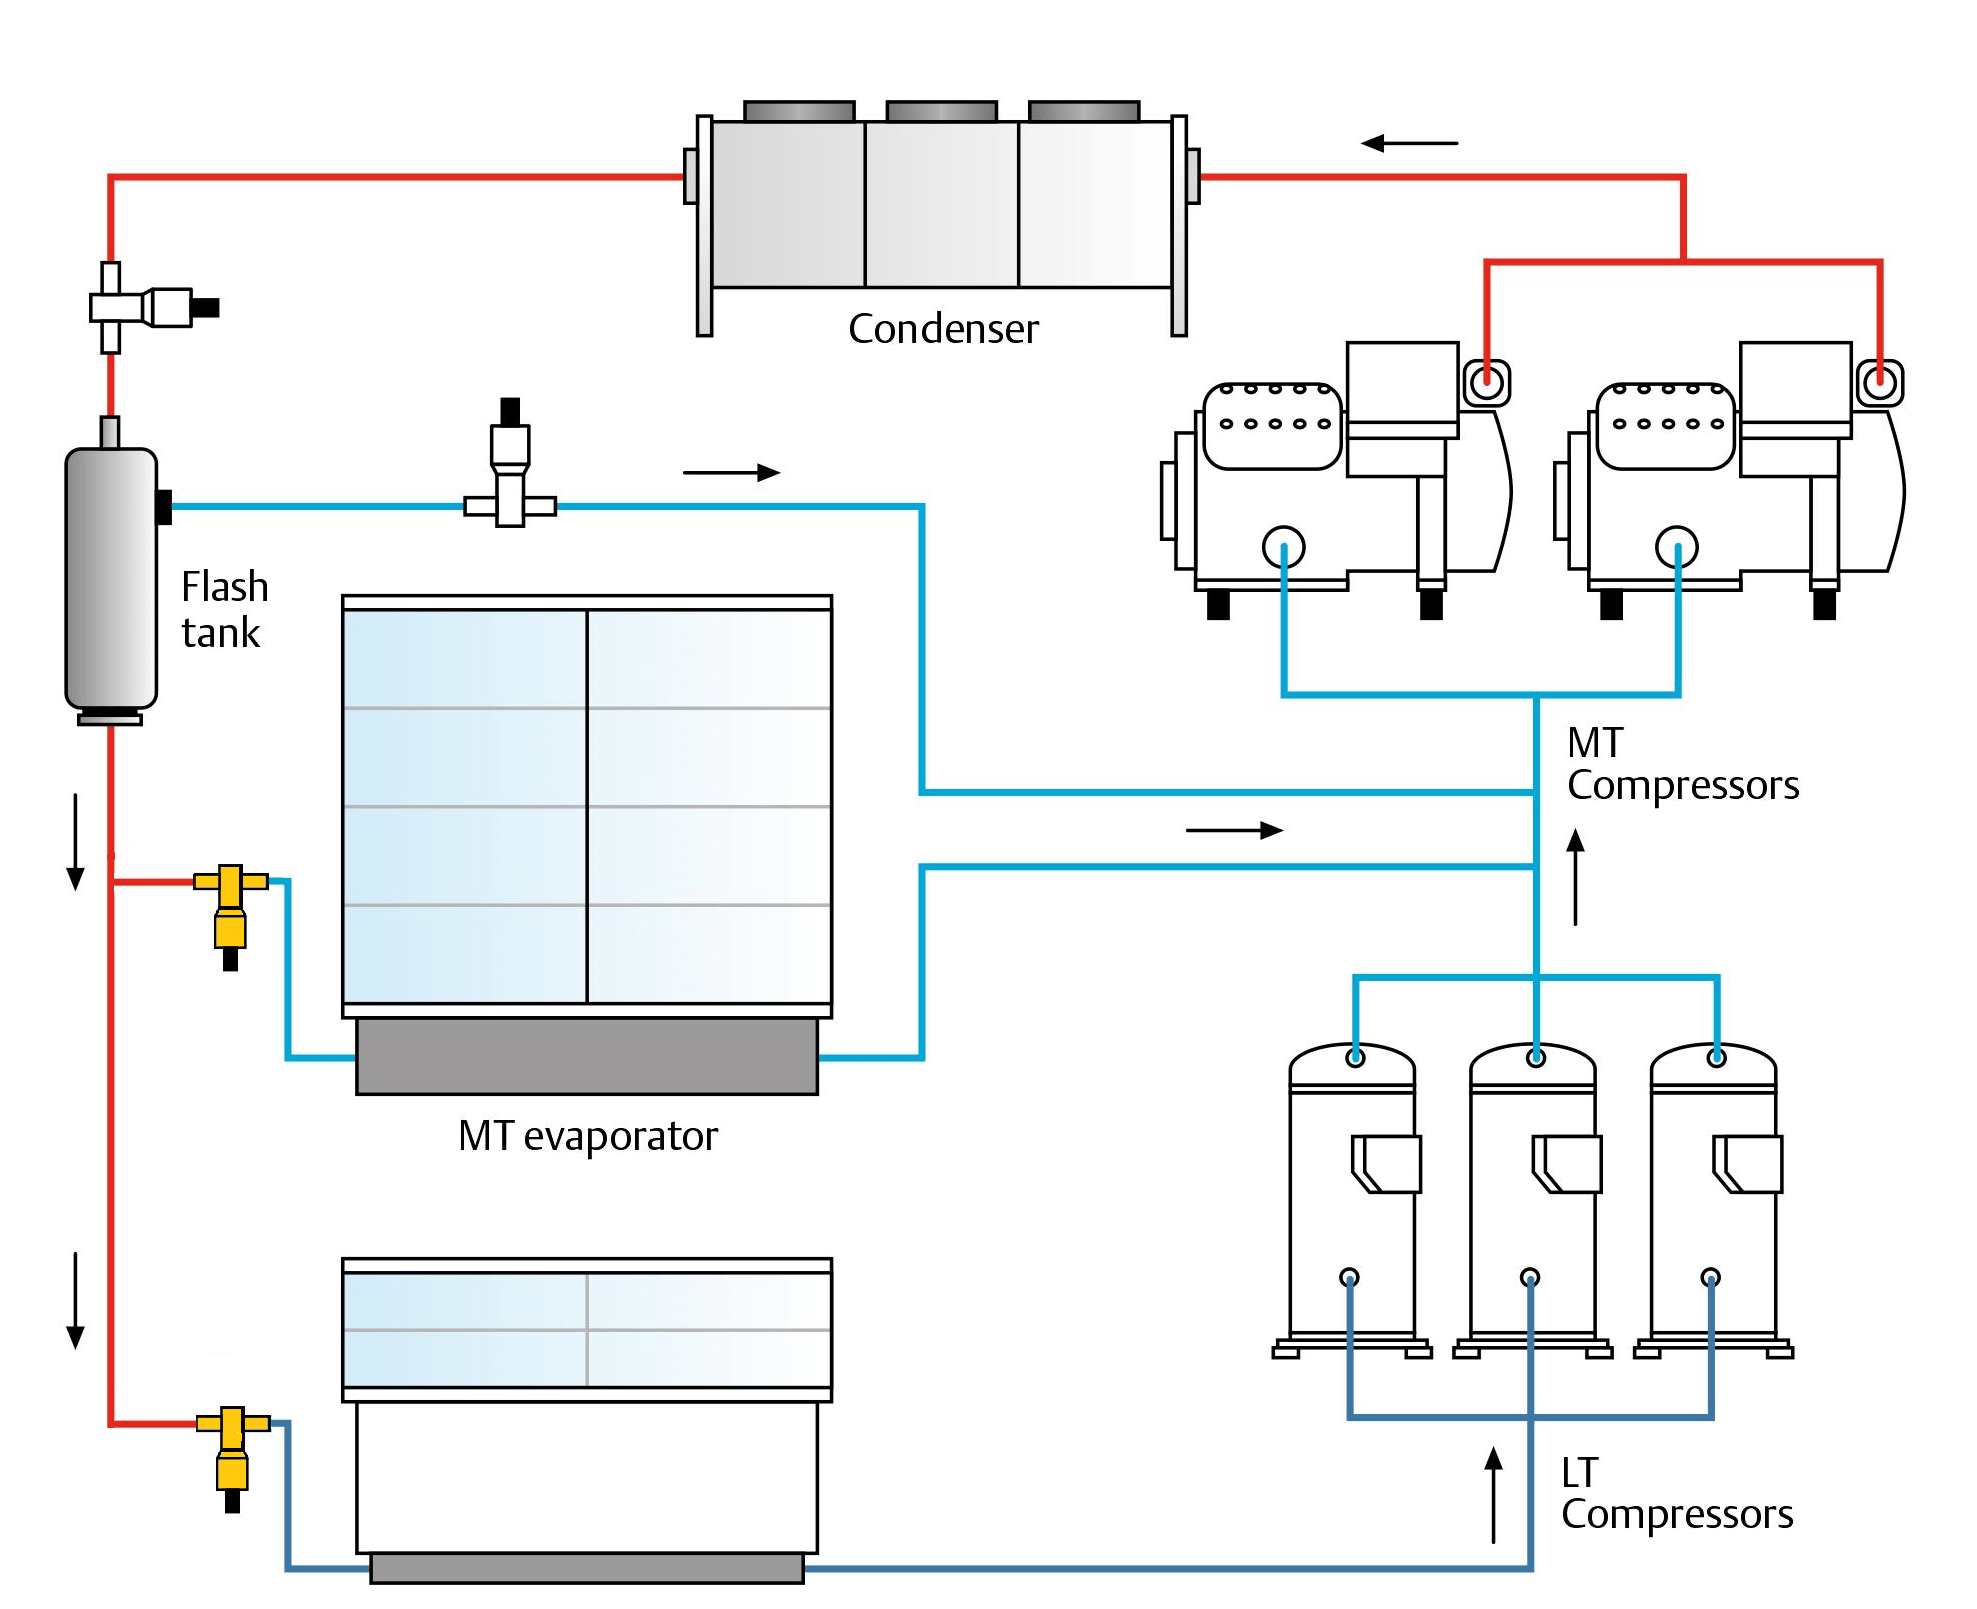 hight resolution of copeland compressor oil system diagram wiring diagram used co2 as a refrigerant retail booster systems climate